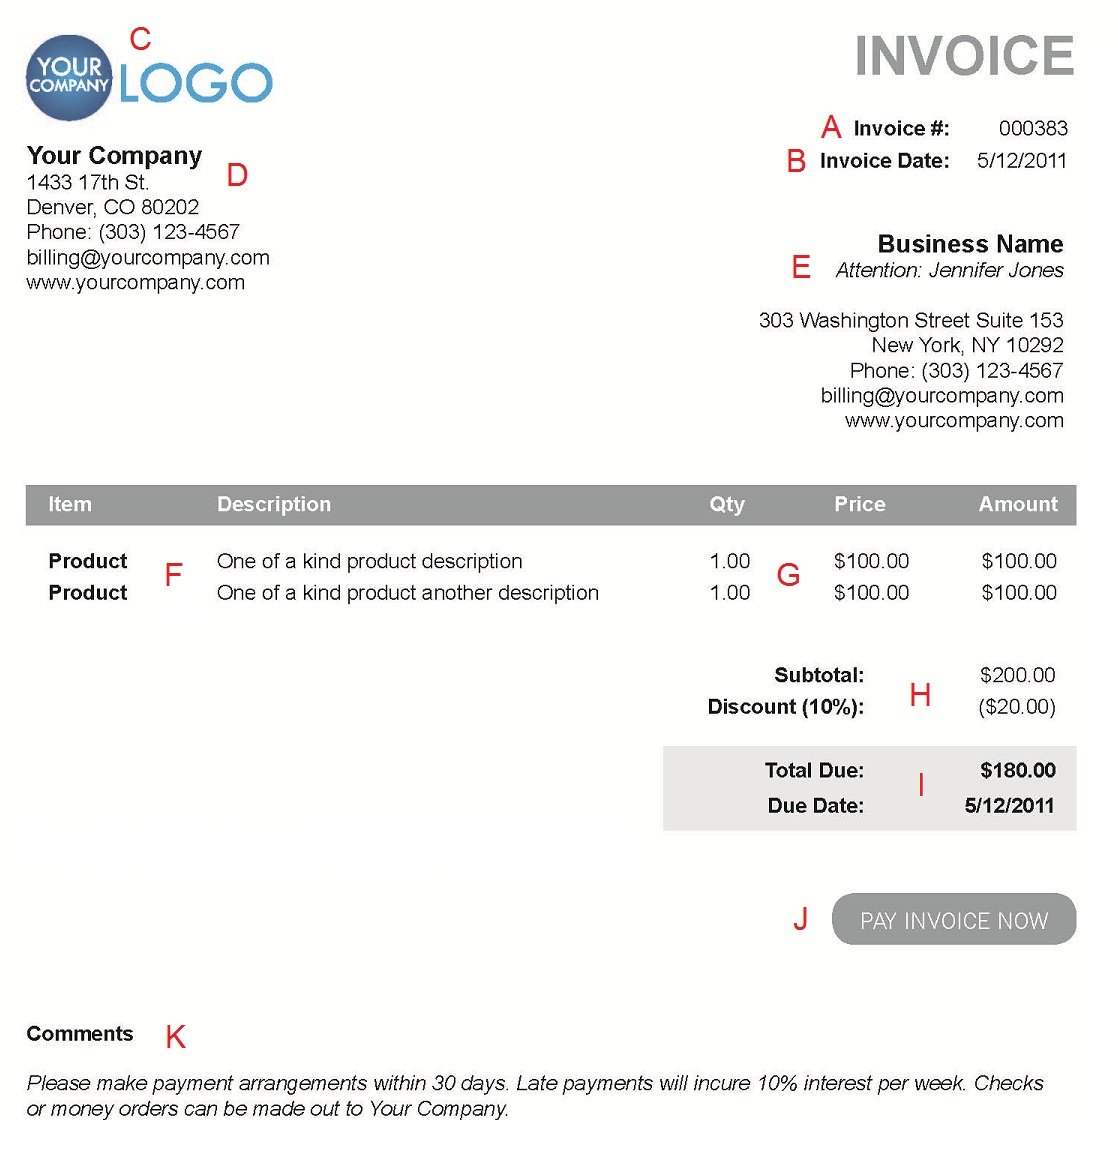 Ultrablogus  Unique The  Different Sections Of An Electronic Payment Invoice With Heavenly A  With Astonishing Best Receipt Scanner For Mac Also All Receiptes In Addition Walmart Refund Policy Without Receipt And Tsp Receipt Printer As Well As Private Car Sale Receipt Additionally Goodwill Donation Receipts From Paysimplecom With Ultrablogus  Heavenly The  Different Sections Of An Electronic Payment Invoice With Astonishing A  And Unique Best Receipt Scanner For Mac Also All Receiptes In Addition Walmart Refund Policy Without Receipt From Paysimplecom